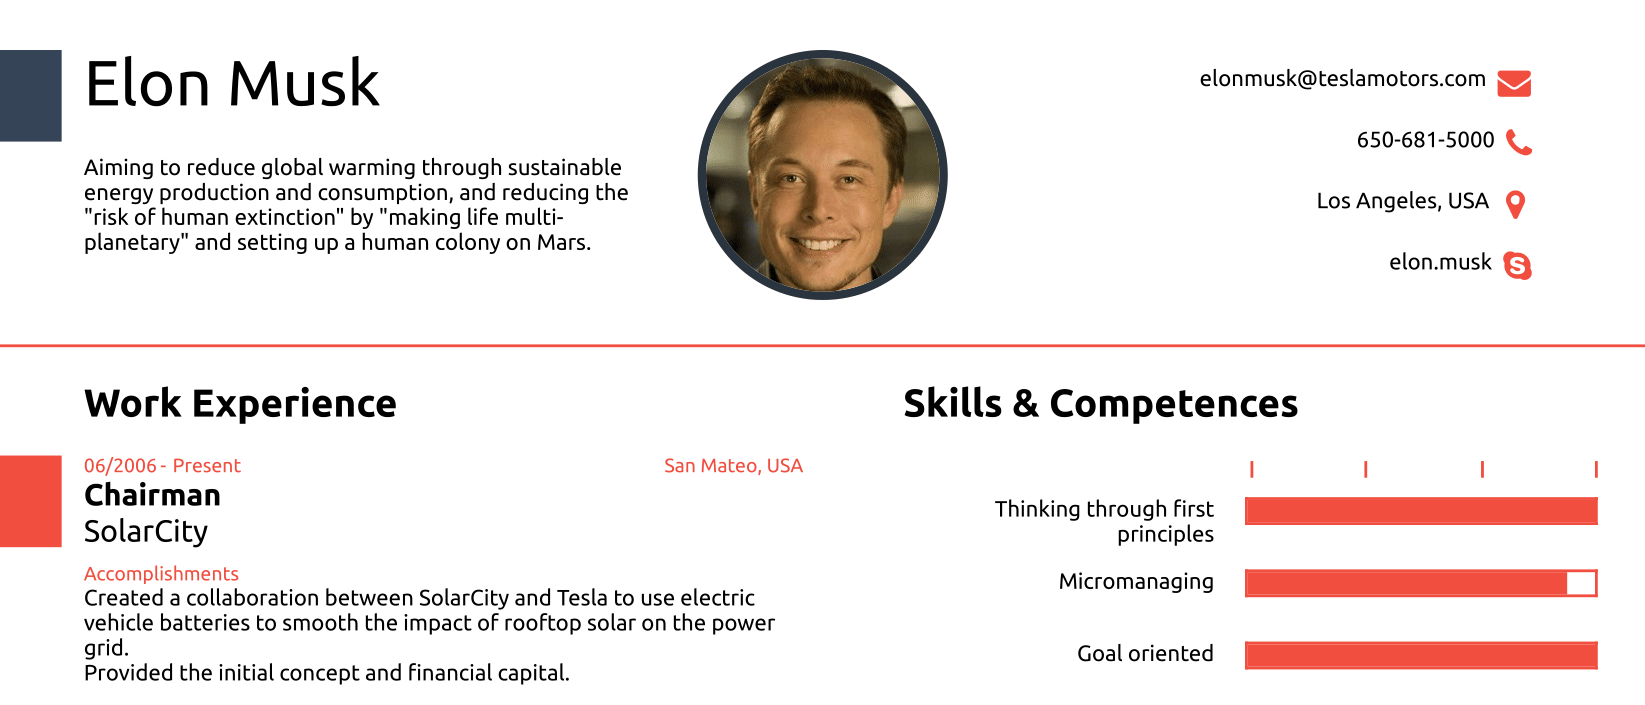 elon musk s one page cv show how you never actually need more than